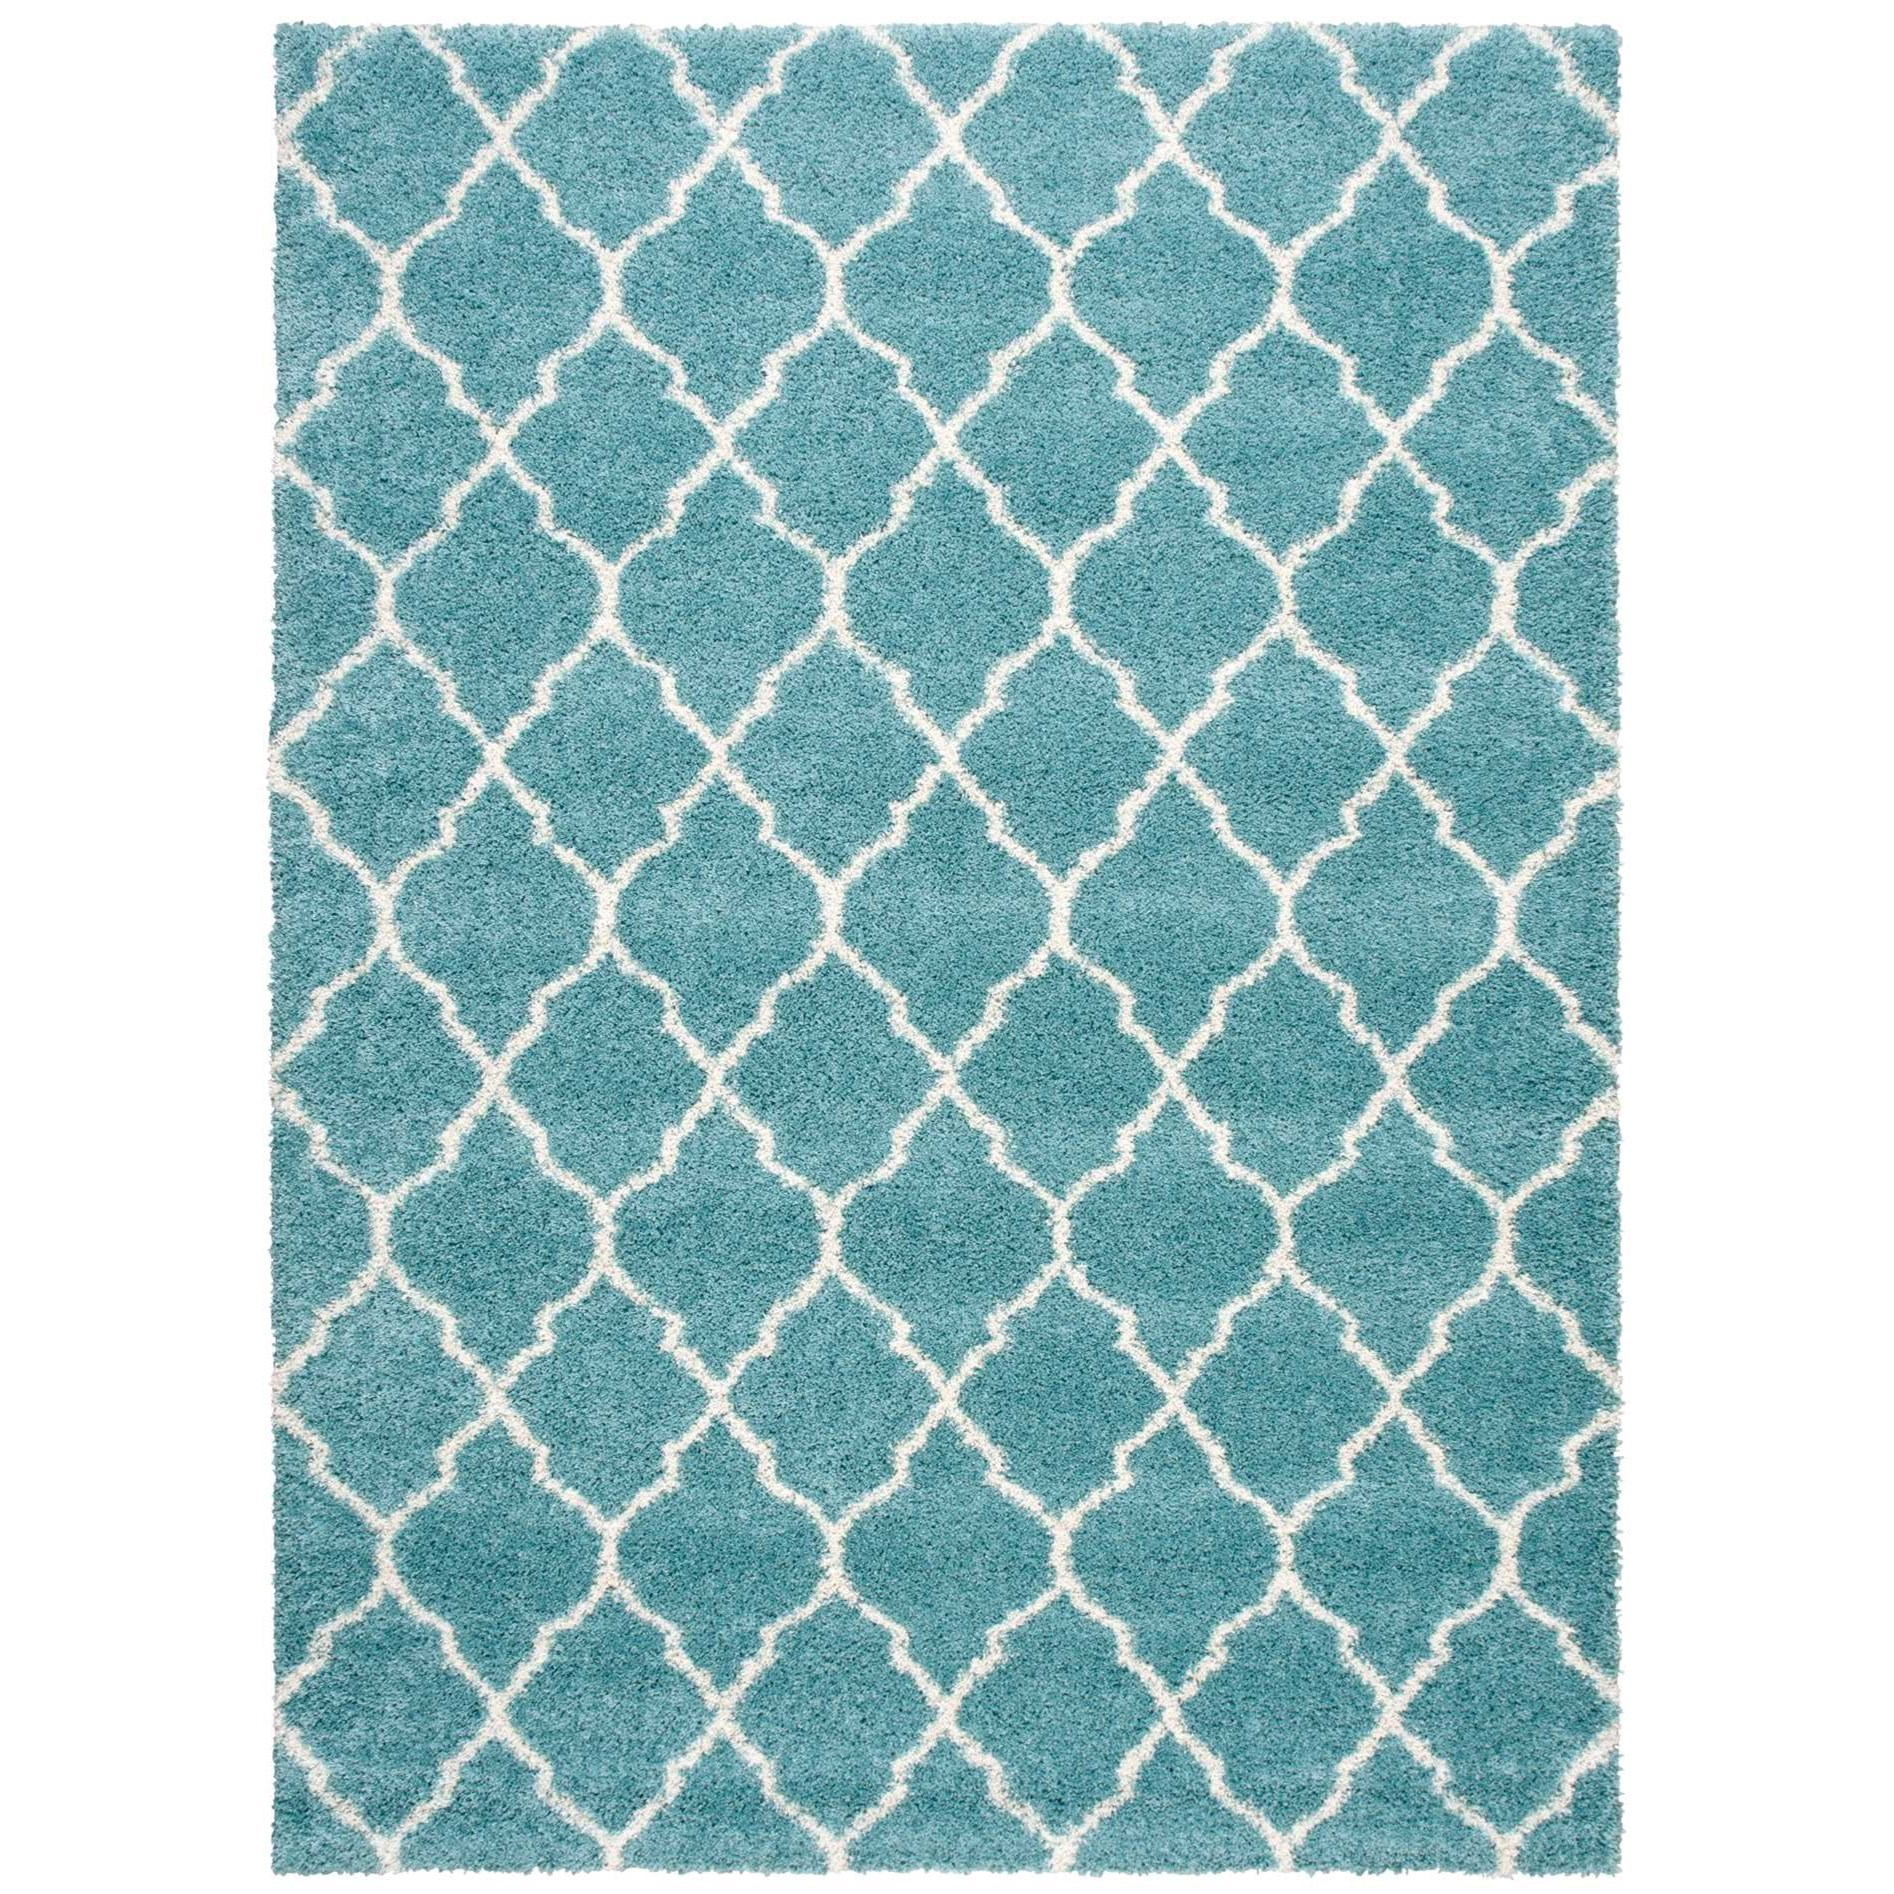 Amore Amore AMOR2 Blue 10'x13'   Rug by Nourison at Home Collections Furniture